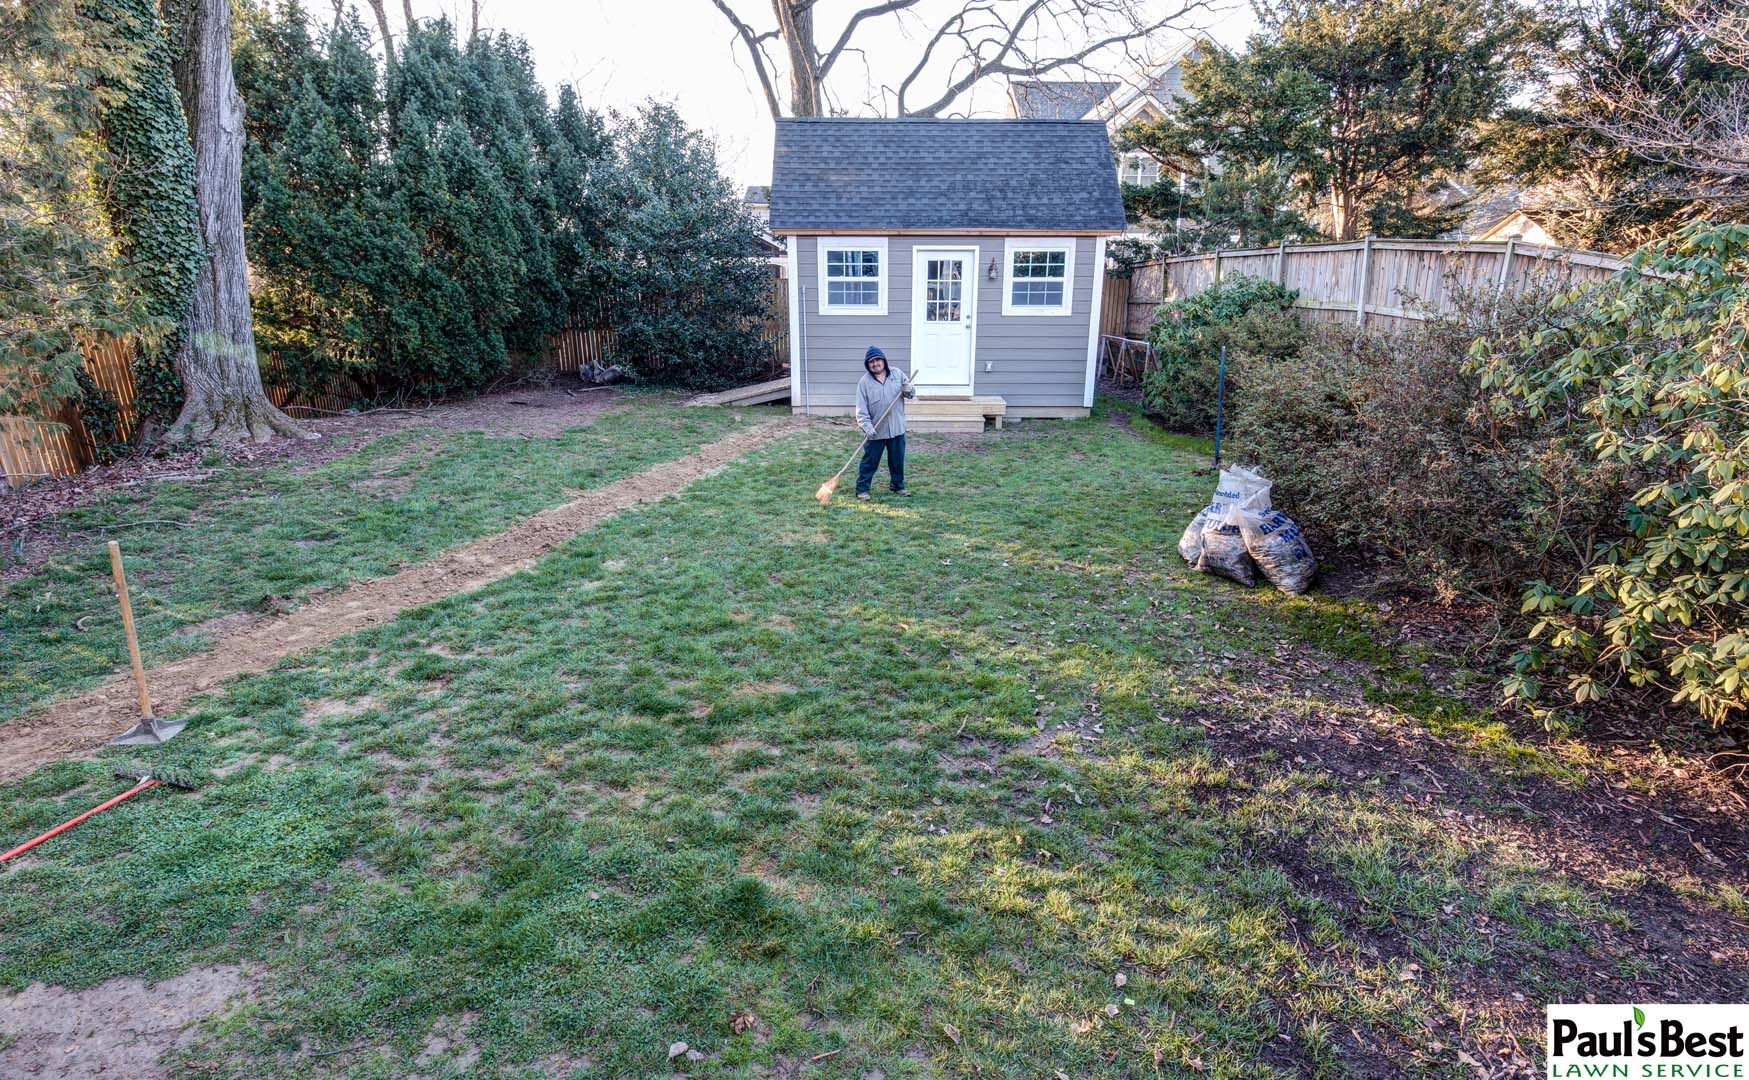 https://paulsbestlawn.com/pbls-img/portfolio/other-services/before-and-after/web-ready/large/BAOS1-h-After-Sod-and-Mulching-in-Arlington-VA.jpg